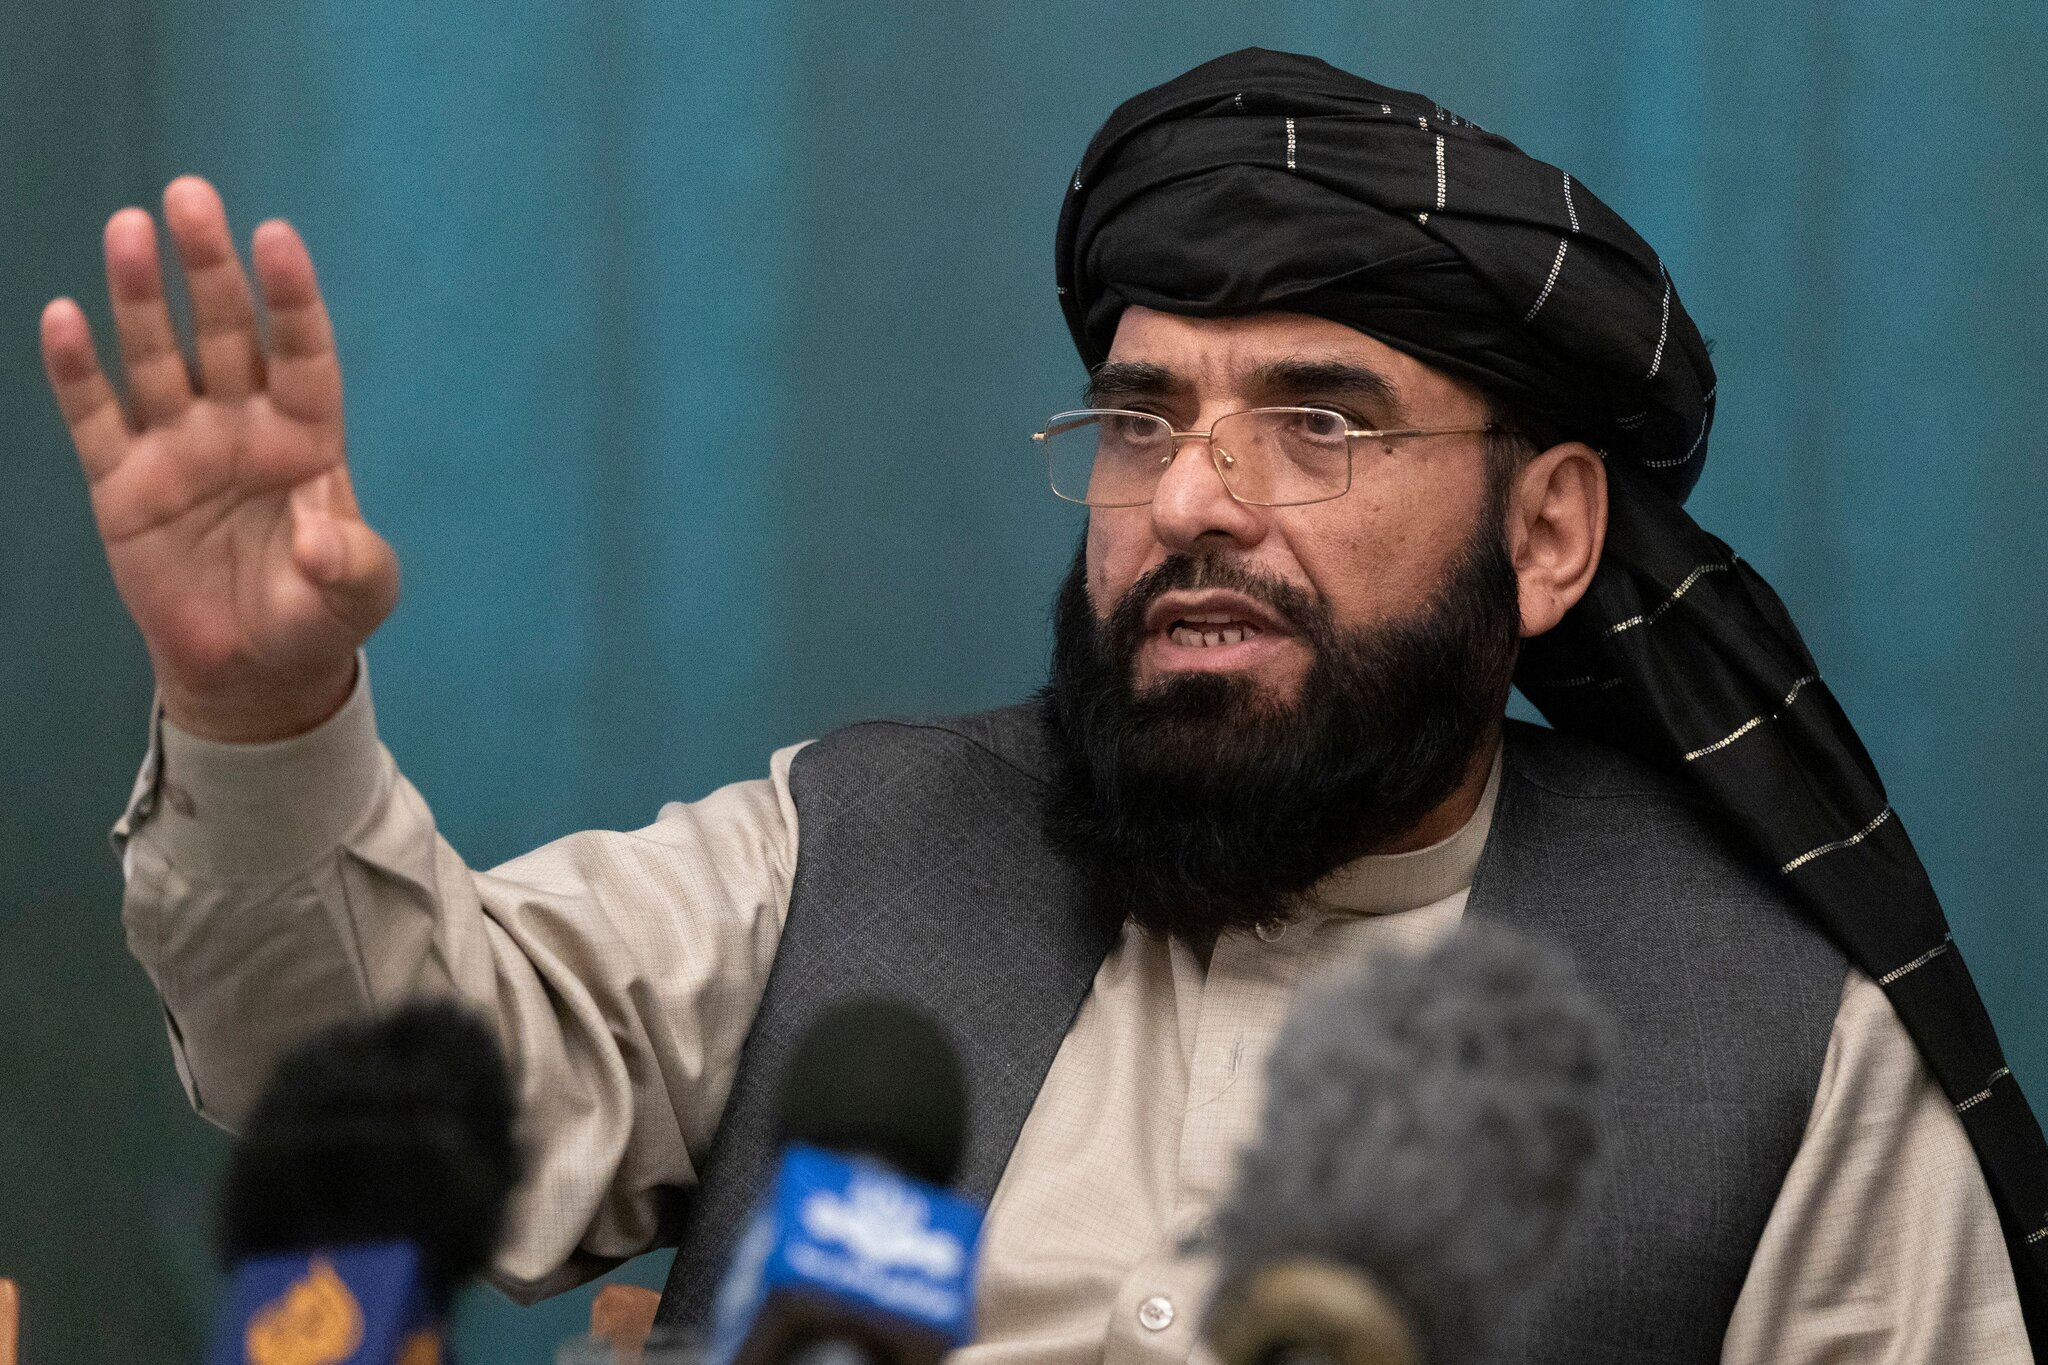 The Taliban nominate a U.N. envoy, complicating a quandary for the General Assembly.